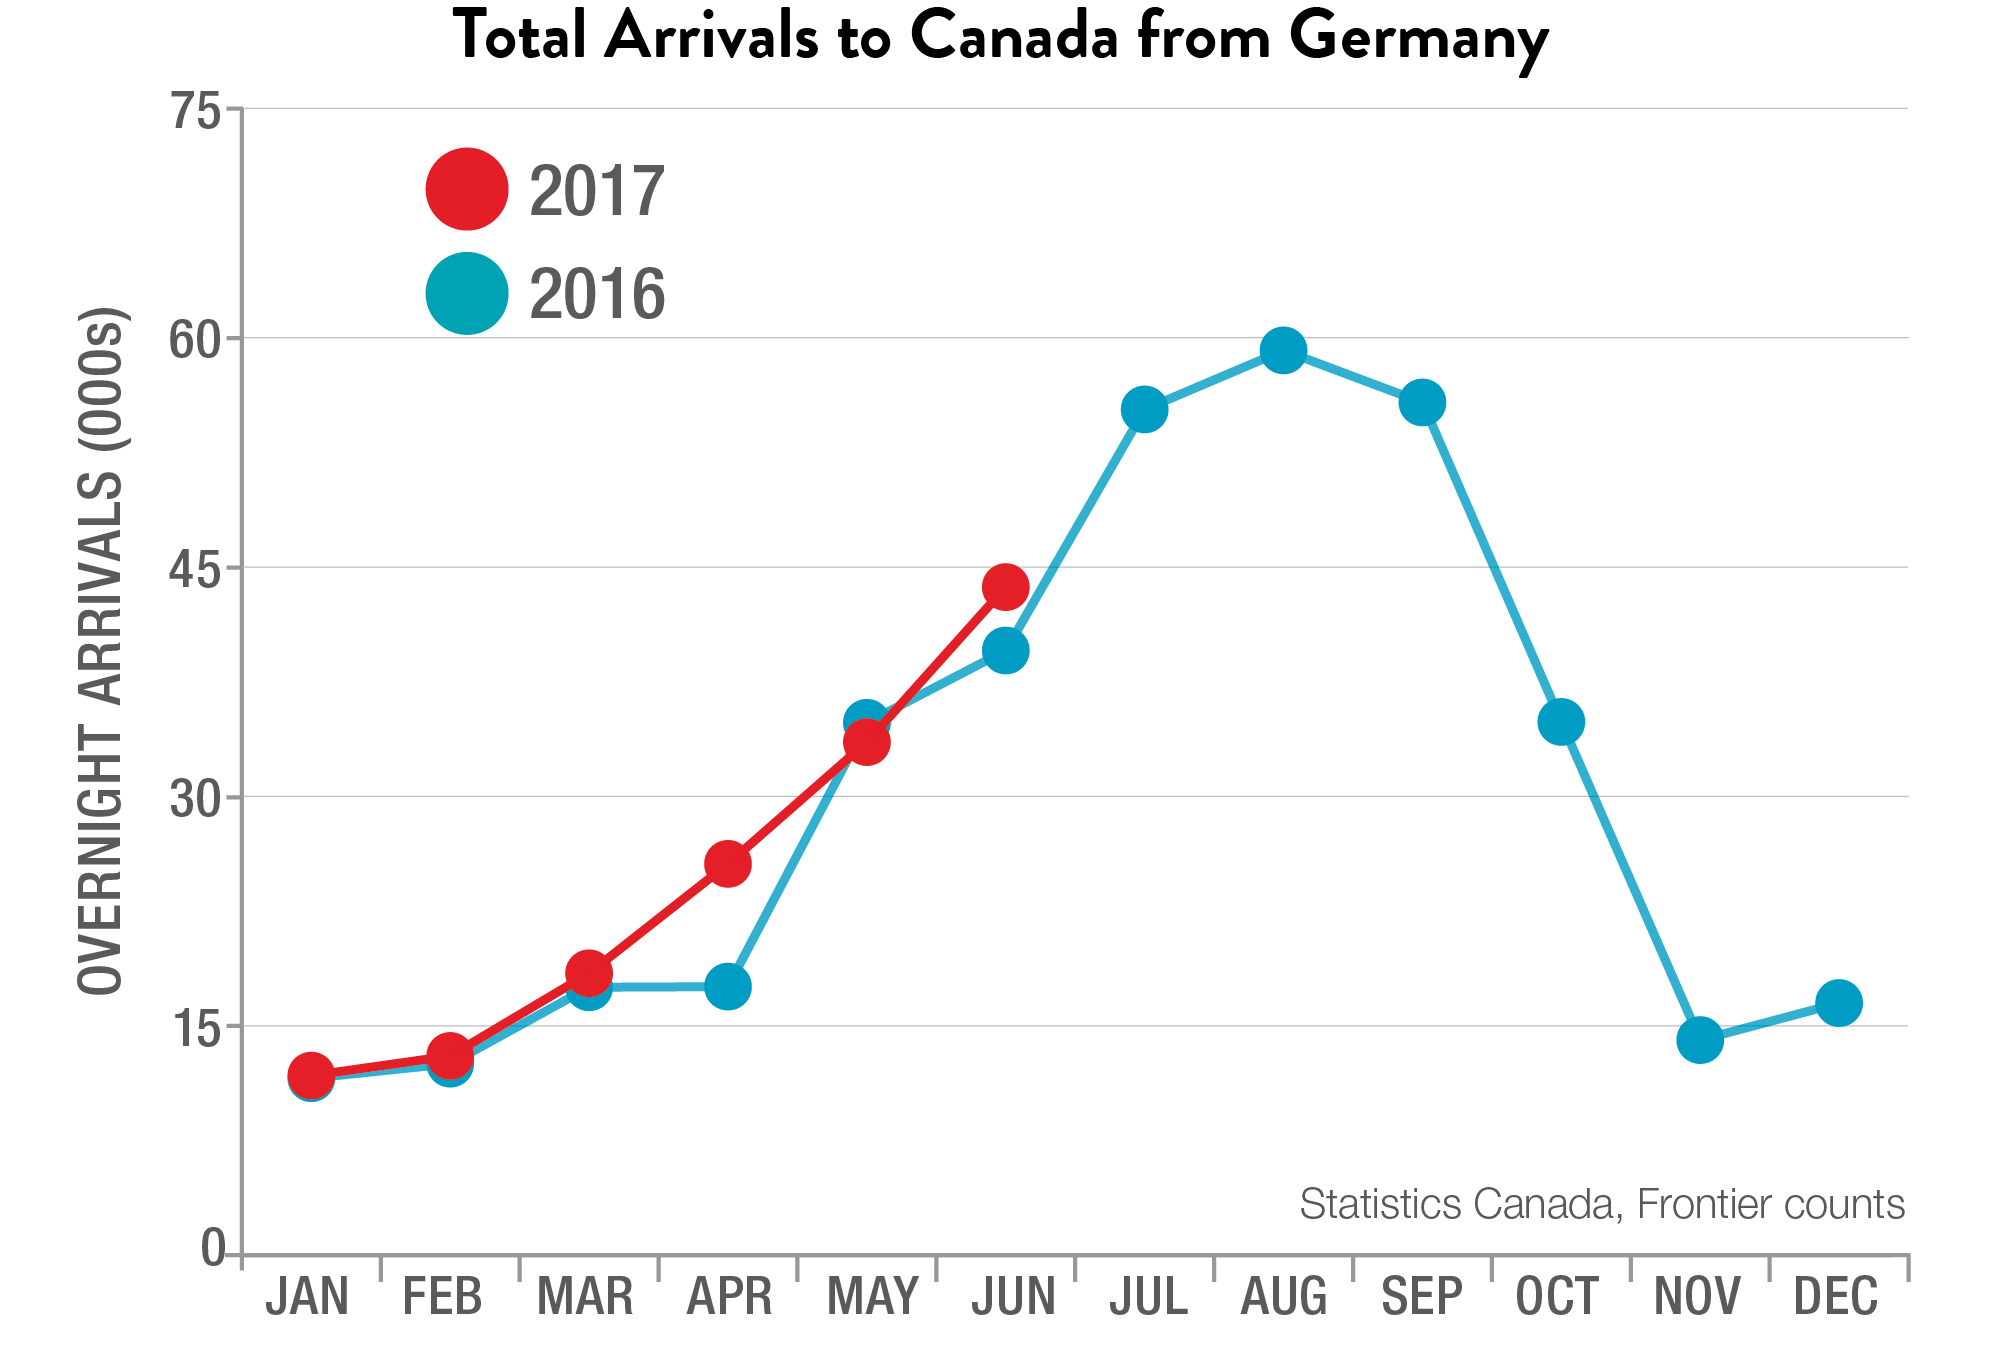 Total Arrivals to Canada from Germany